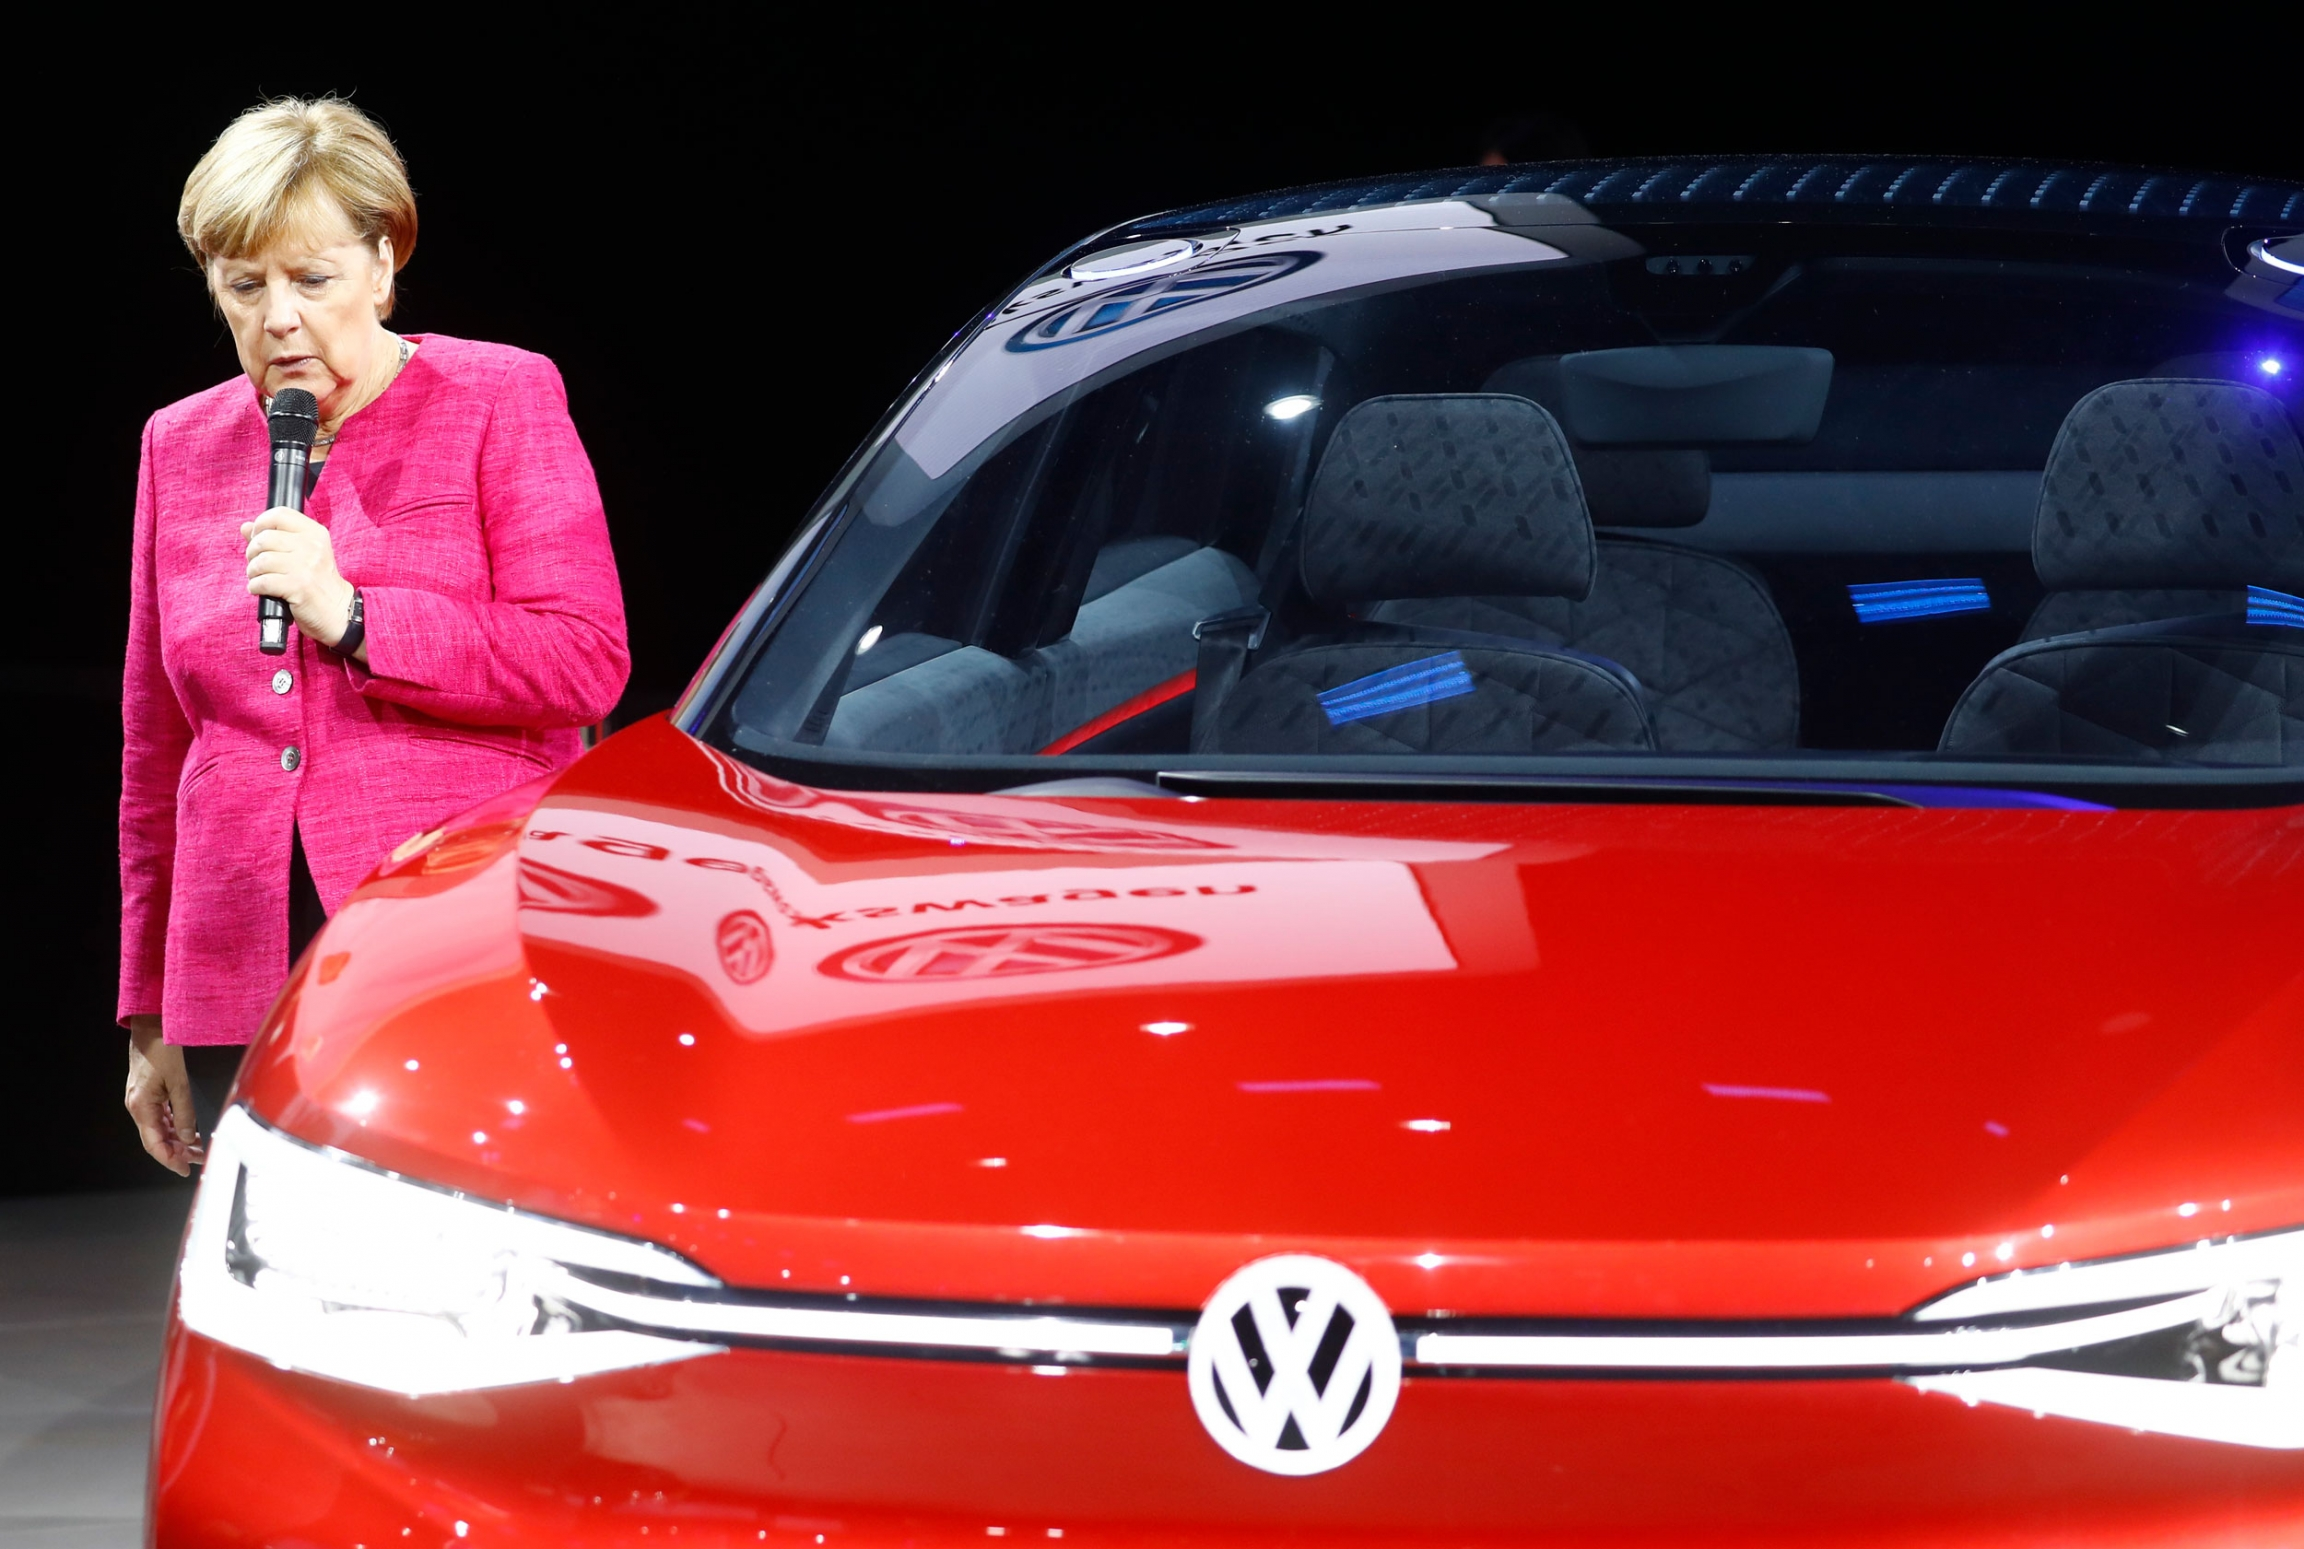 German chancellor Angela Merkel is shown wearing a pink jacket and standing next to a red VW car.